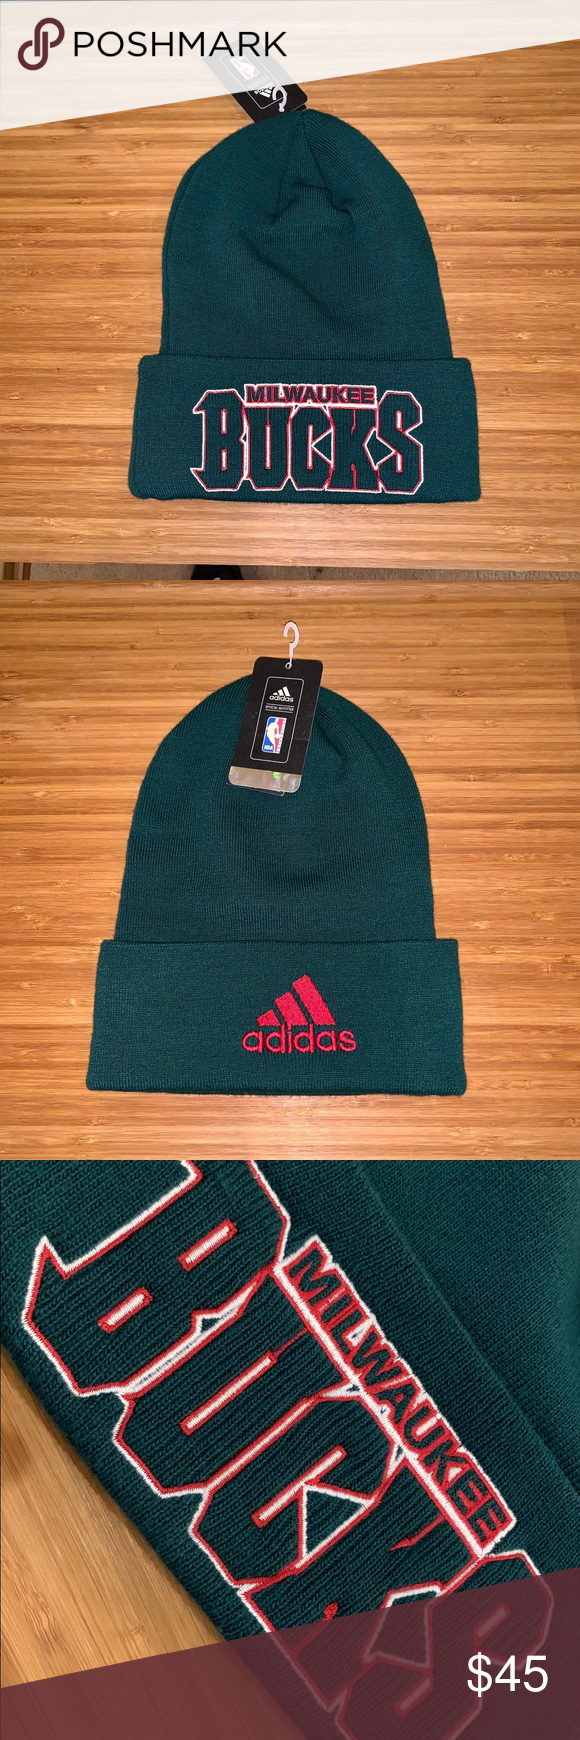 71f1b3f4 New Adidas Milwaukee Bucks NBA Basketball Green Beanie Hat! New Old Stock  (NOS) with Tags / Vintage adidas Accessories Hats